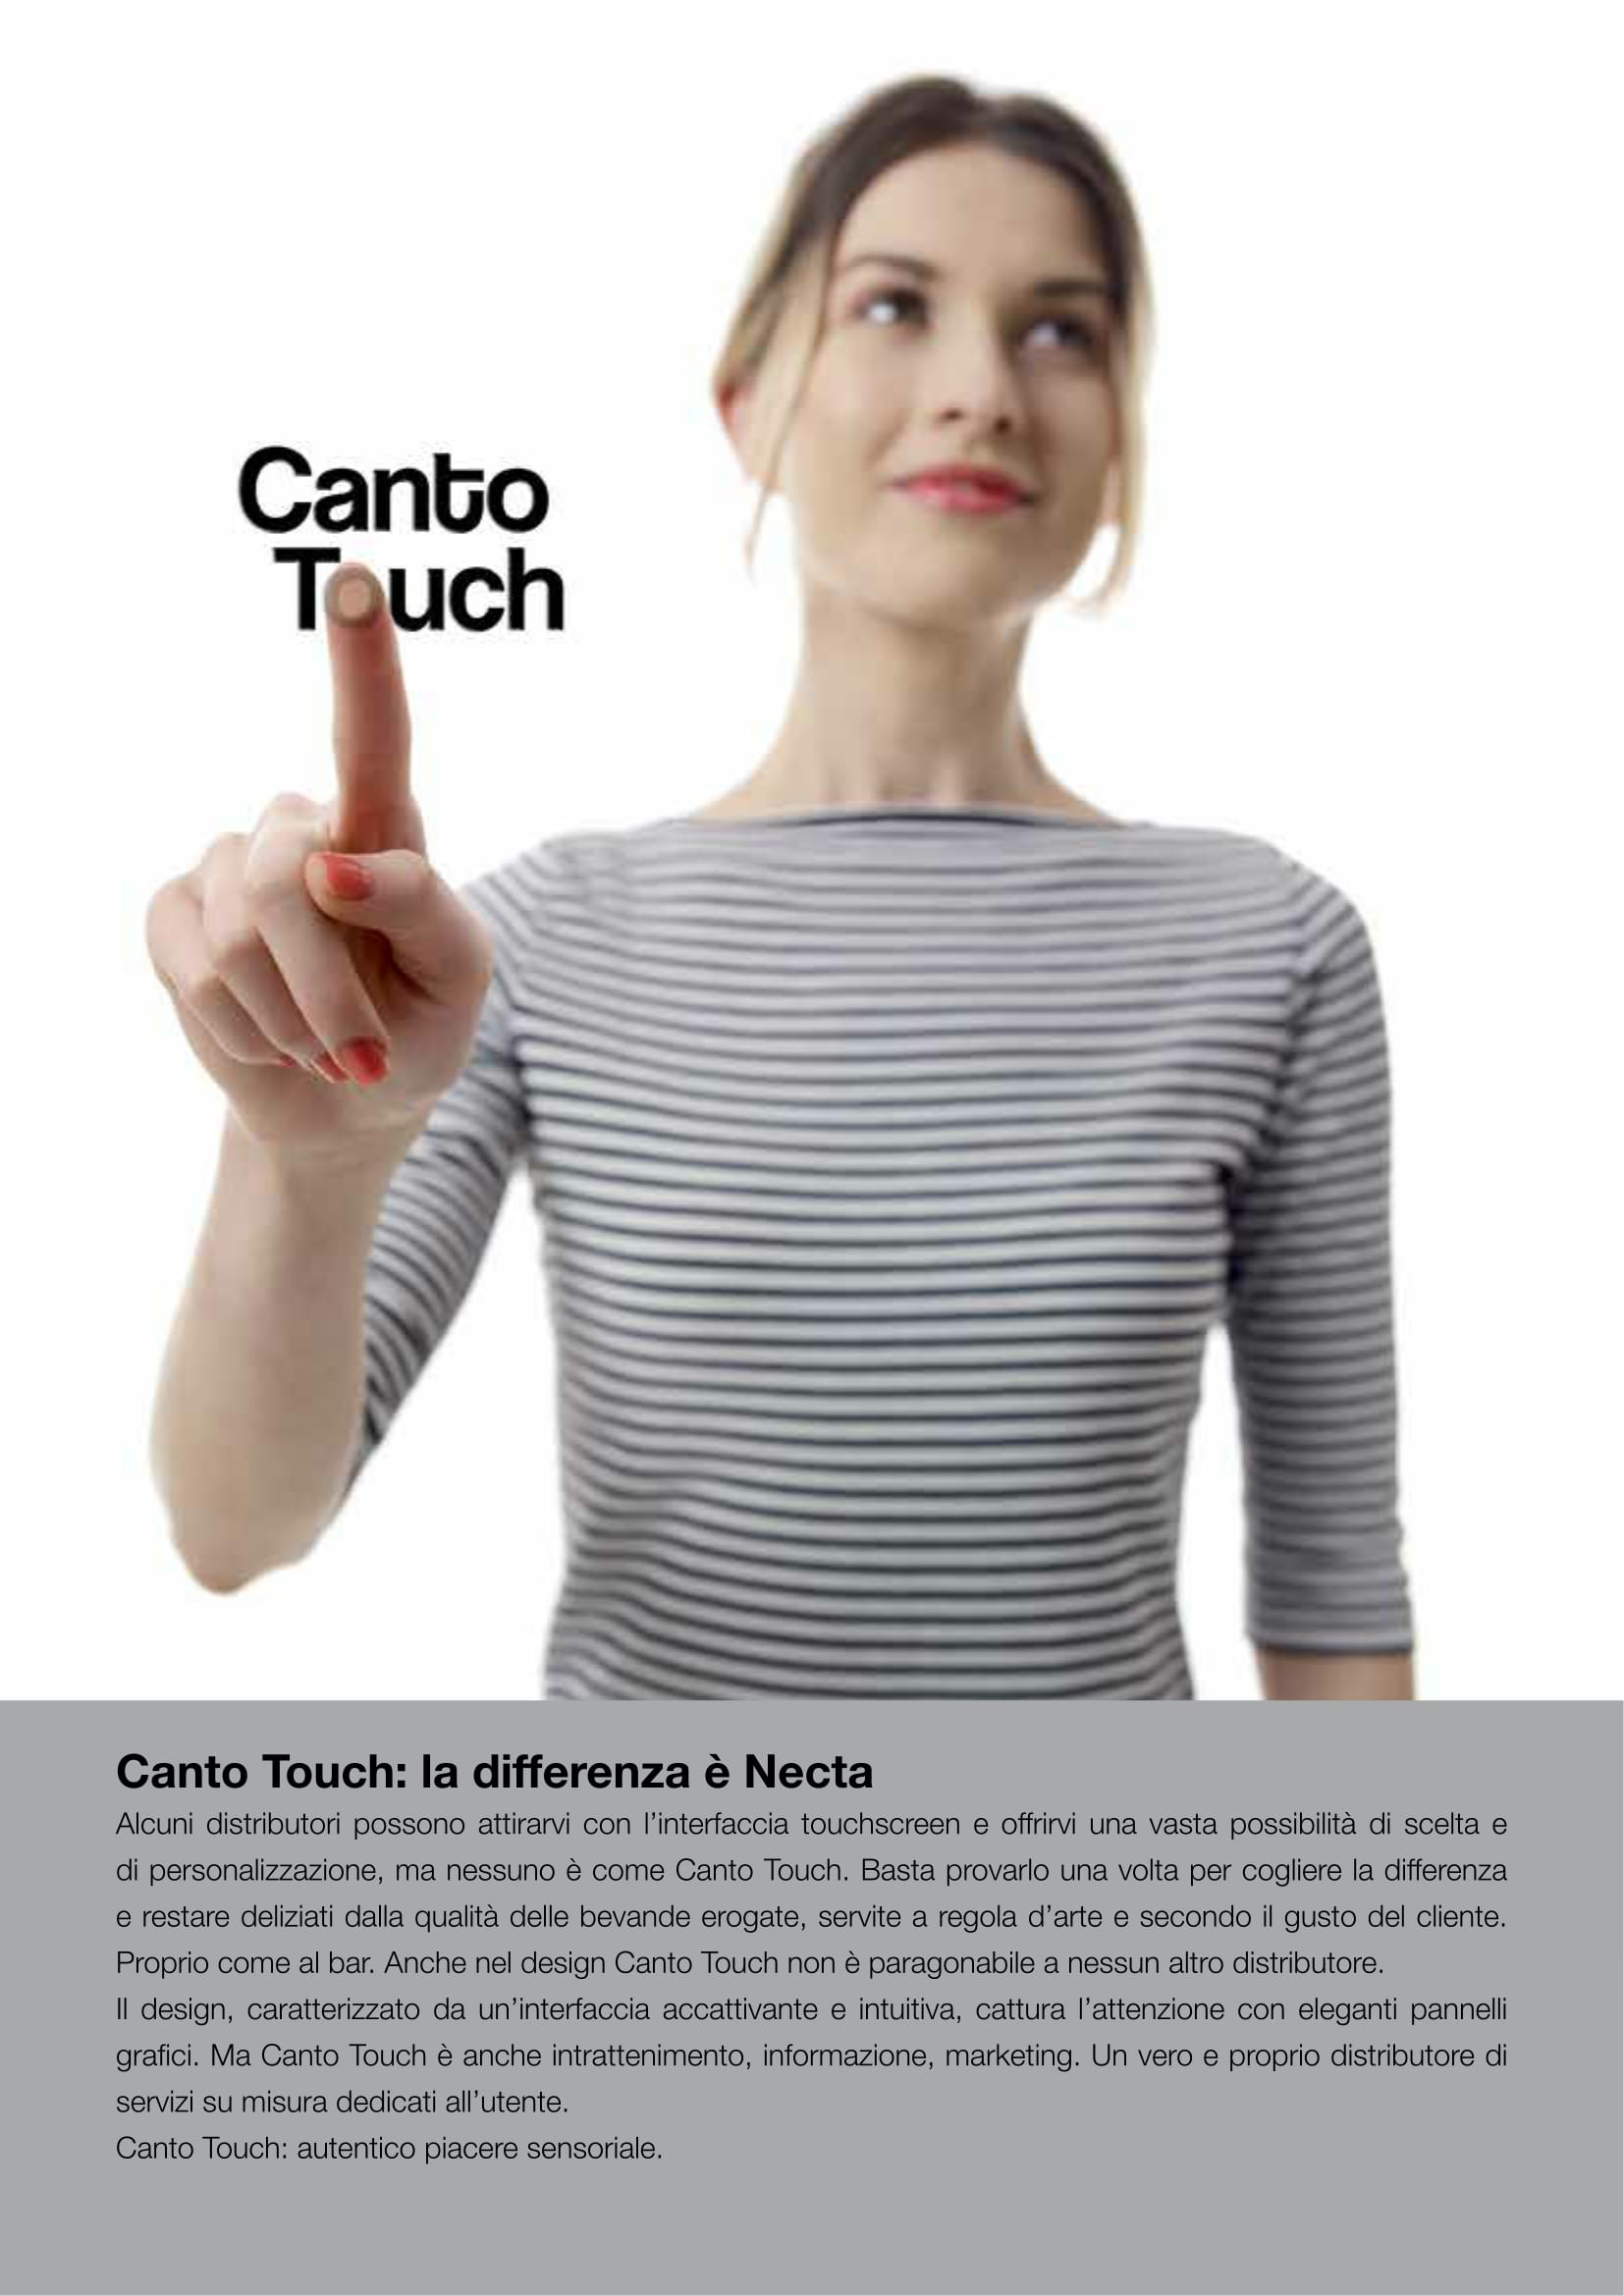 Canto touch